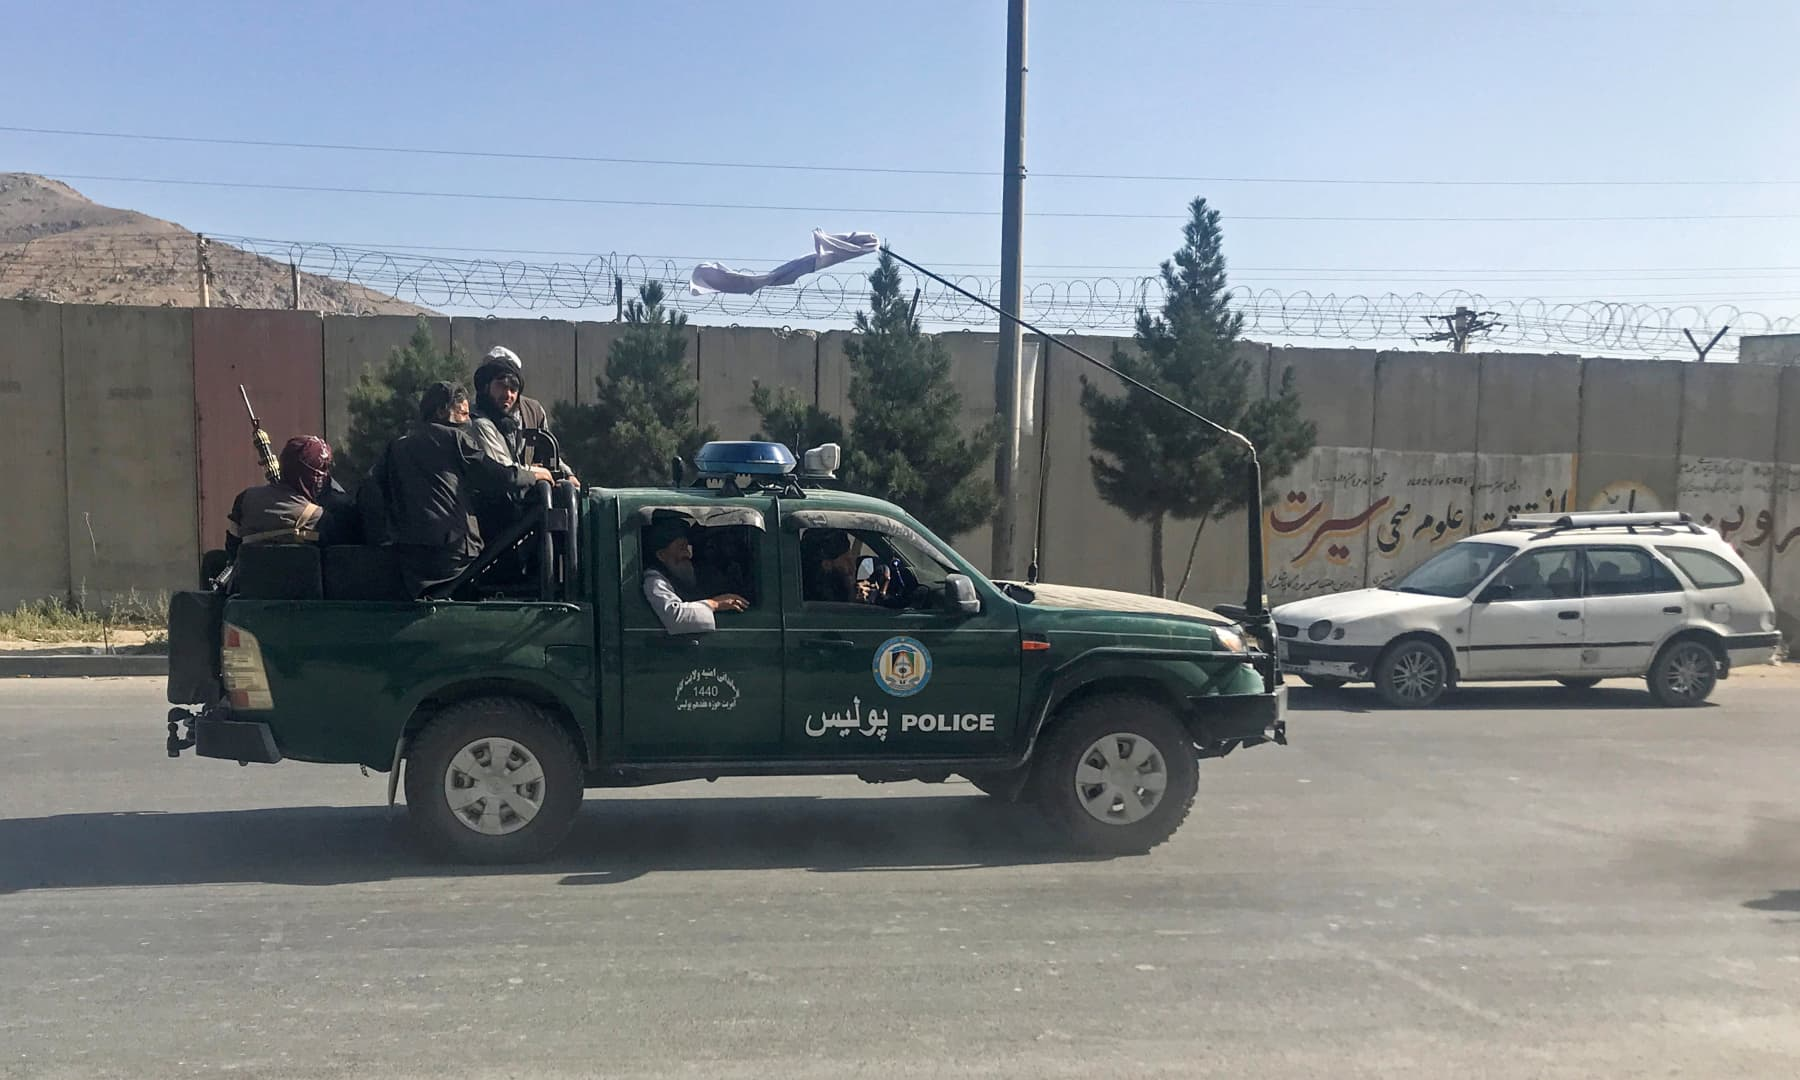 Taliban fighters ride on a police vehicle in Kabul, Afghanistan on August 16, 2021. — Reuters